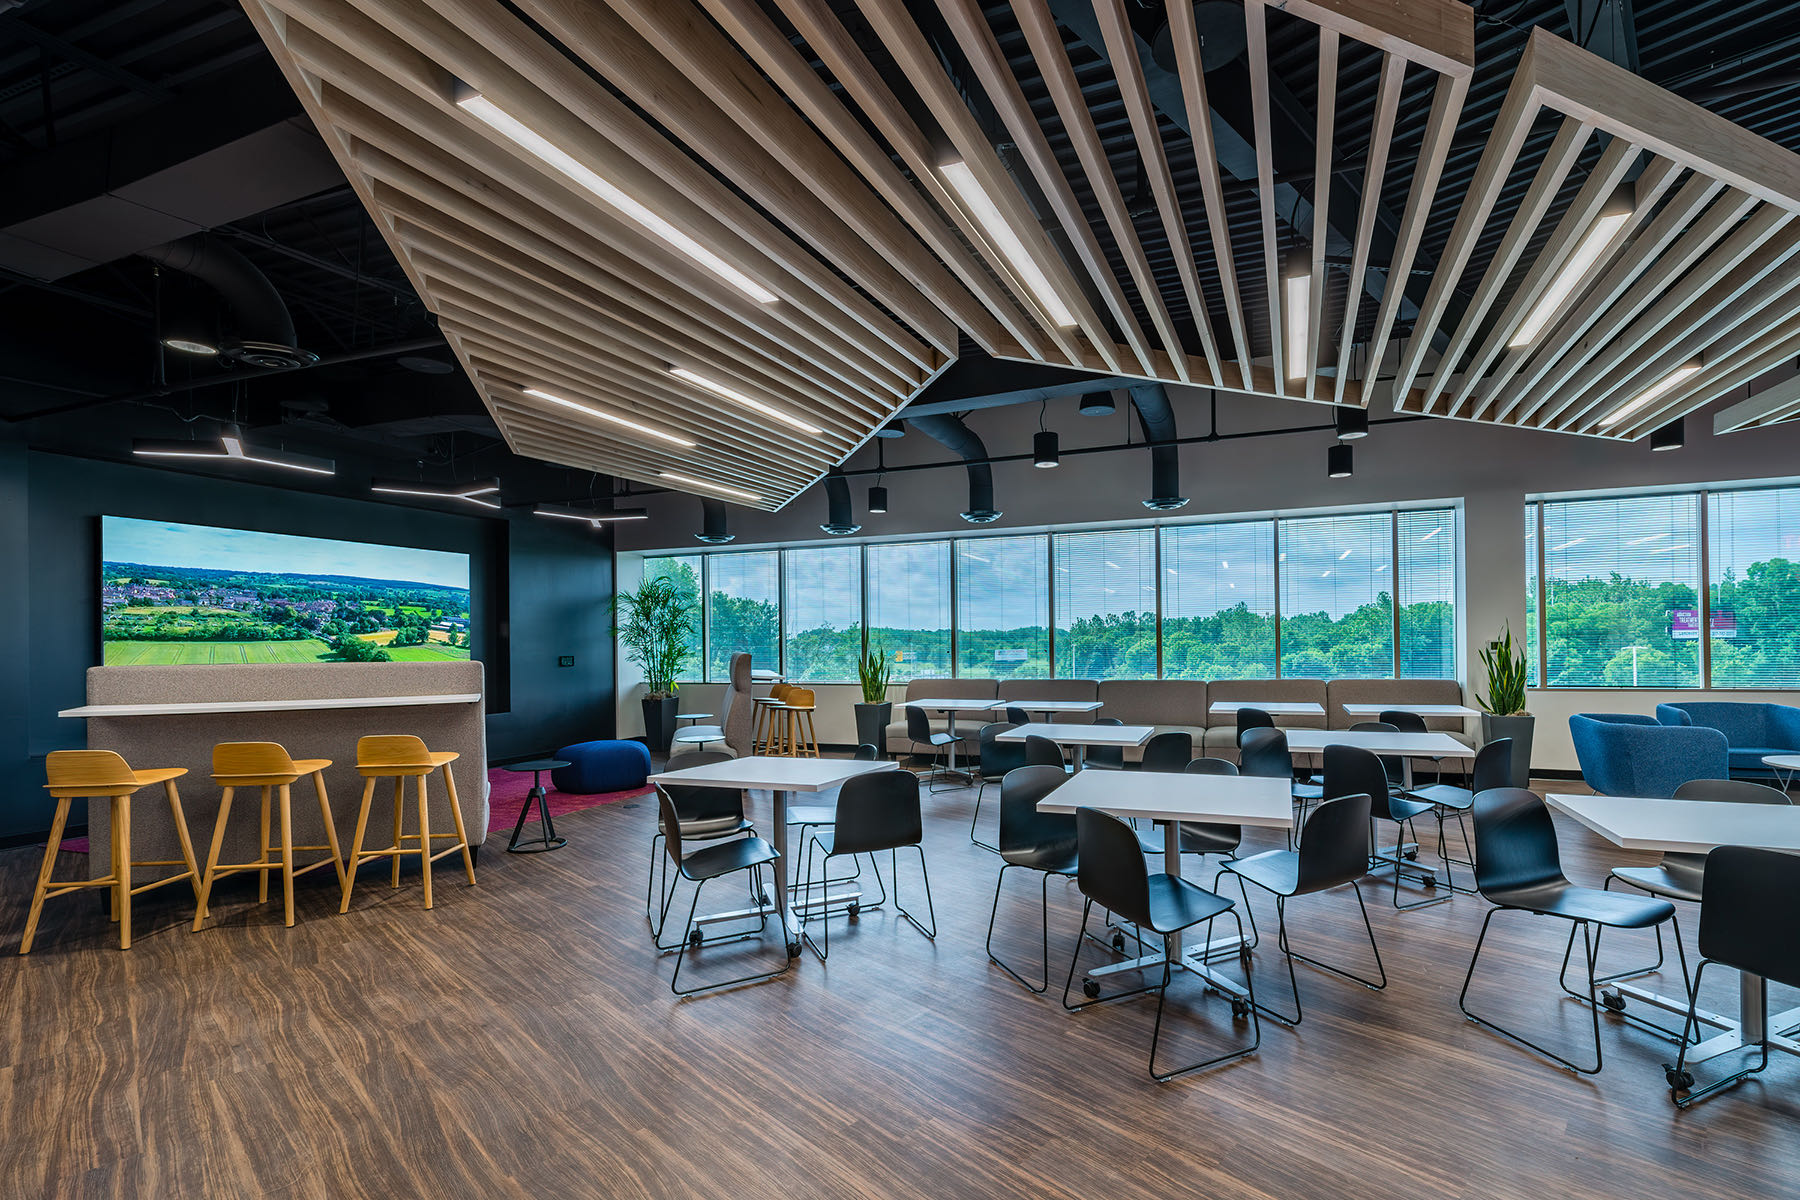 A Look Inside American Structurepoint's New Indianapolis Design Center